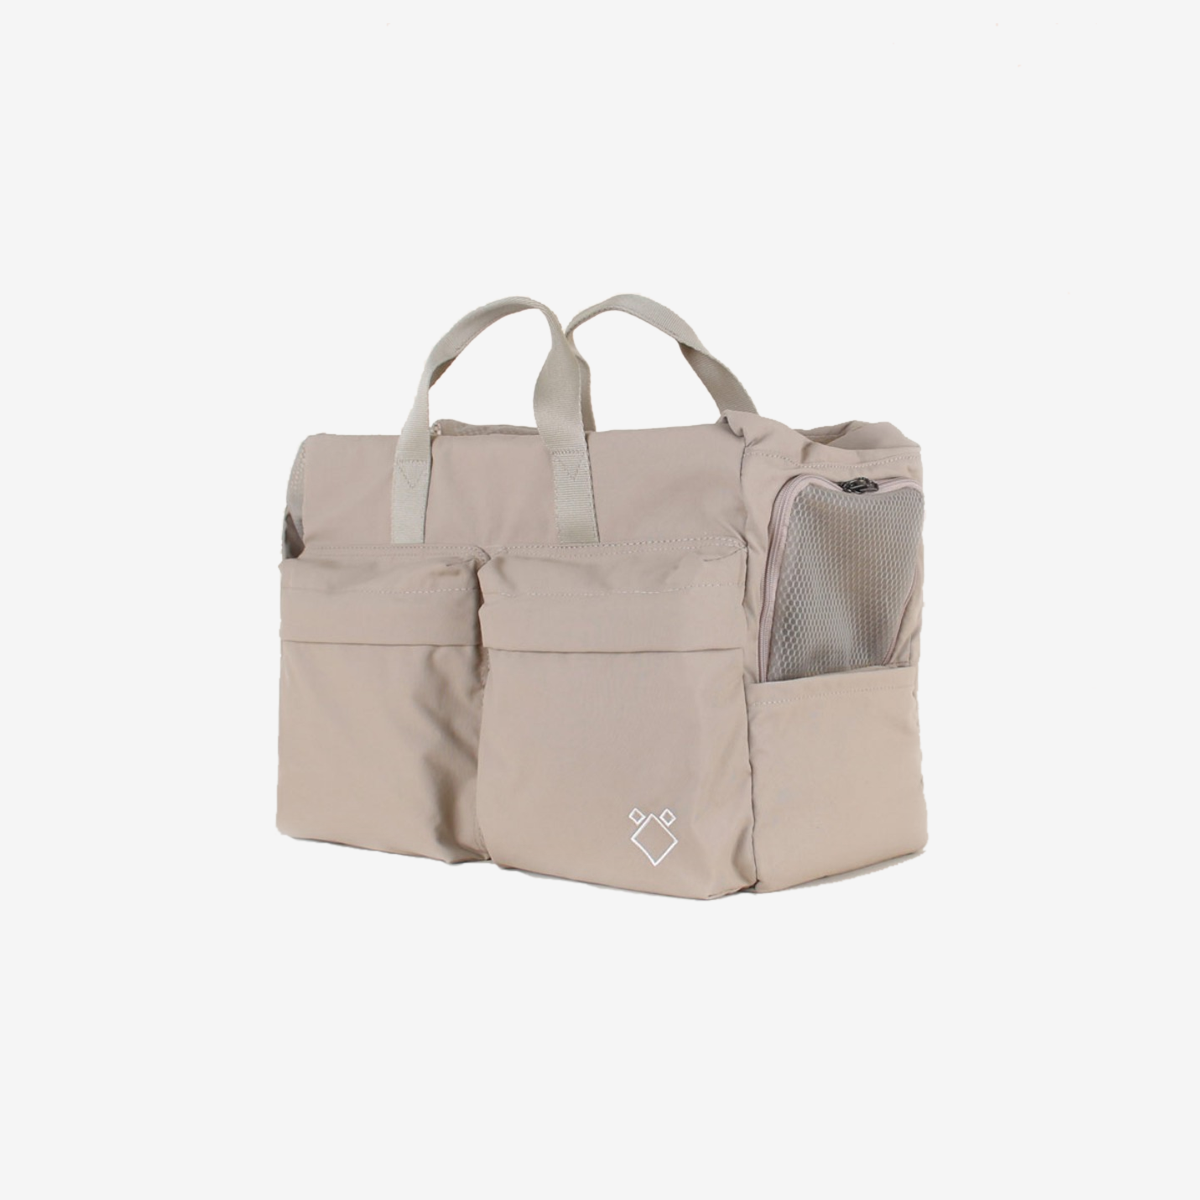 Daily outbag _ beige (이동가방)